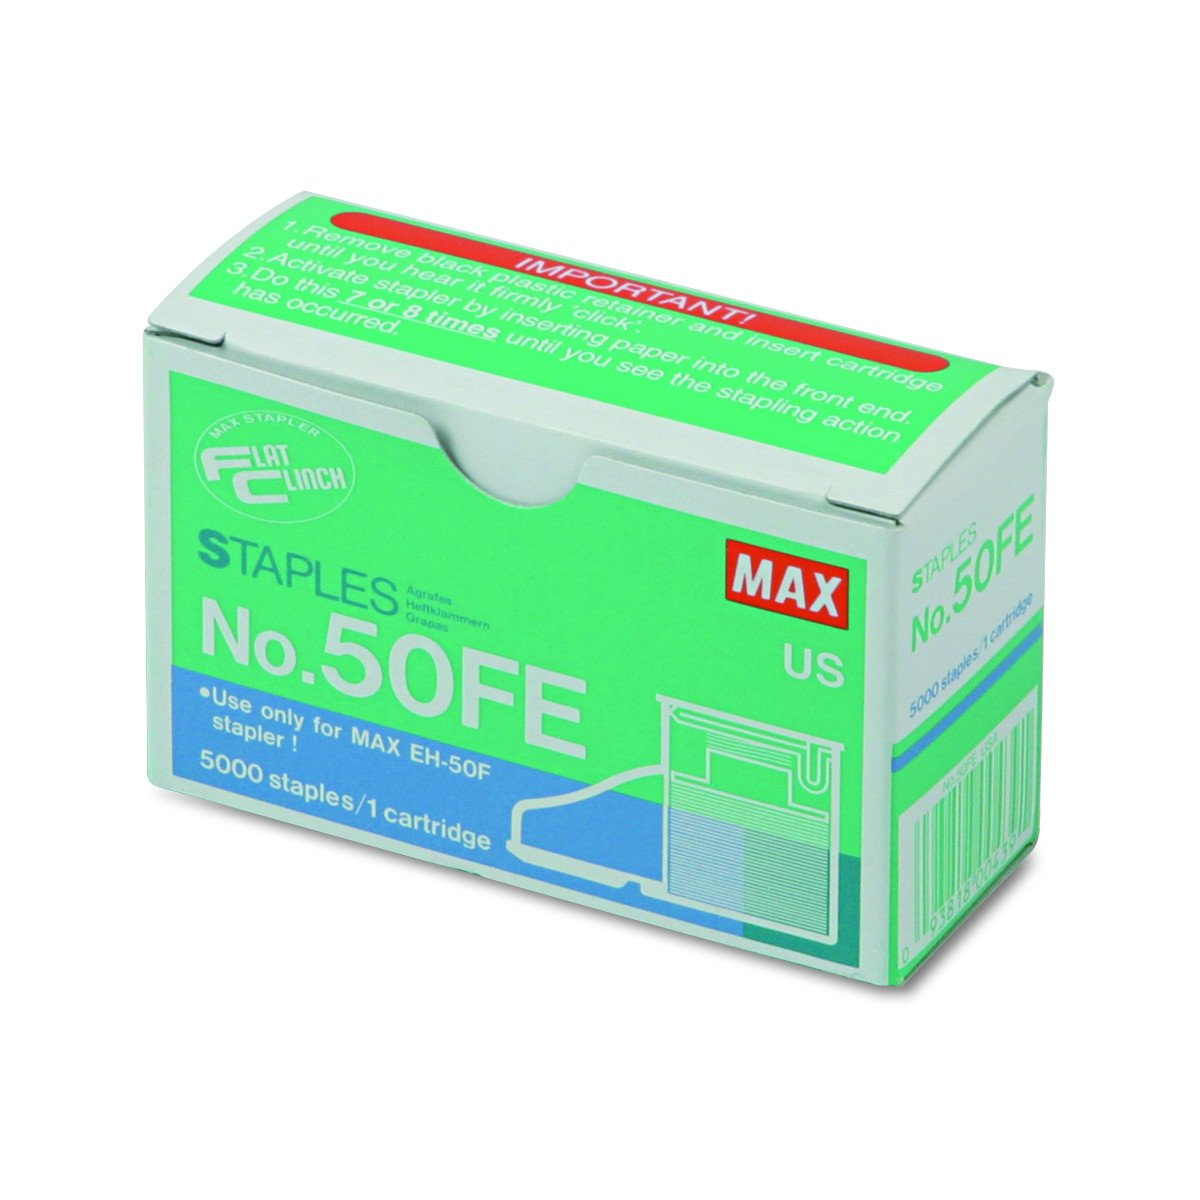 Max 50-FE Staple Cartridge for EH-50F Flat-Clinch Electric Stapler, 5000/Box